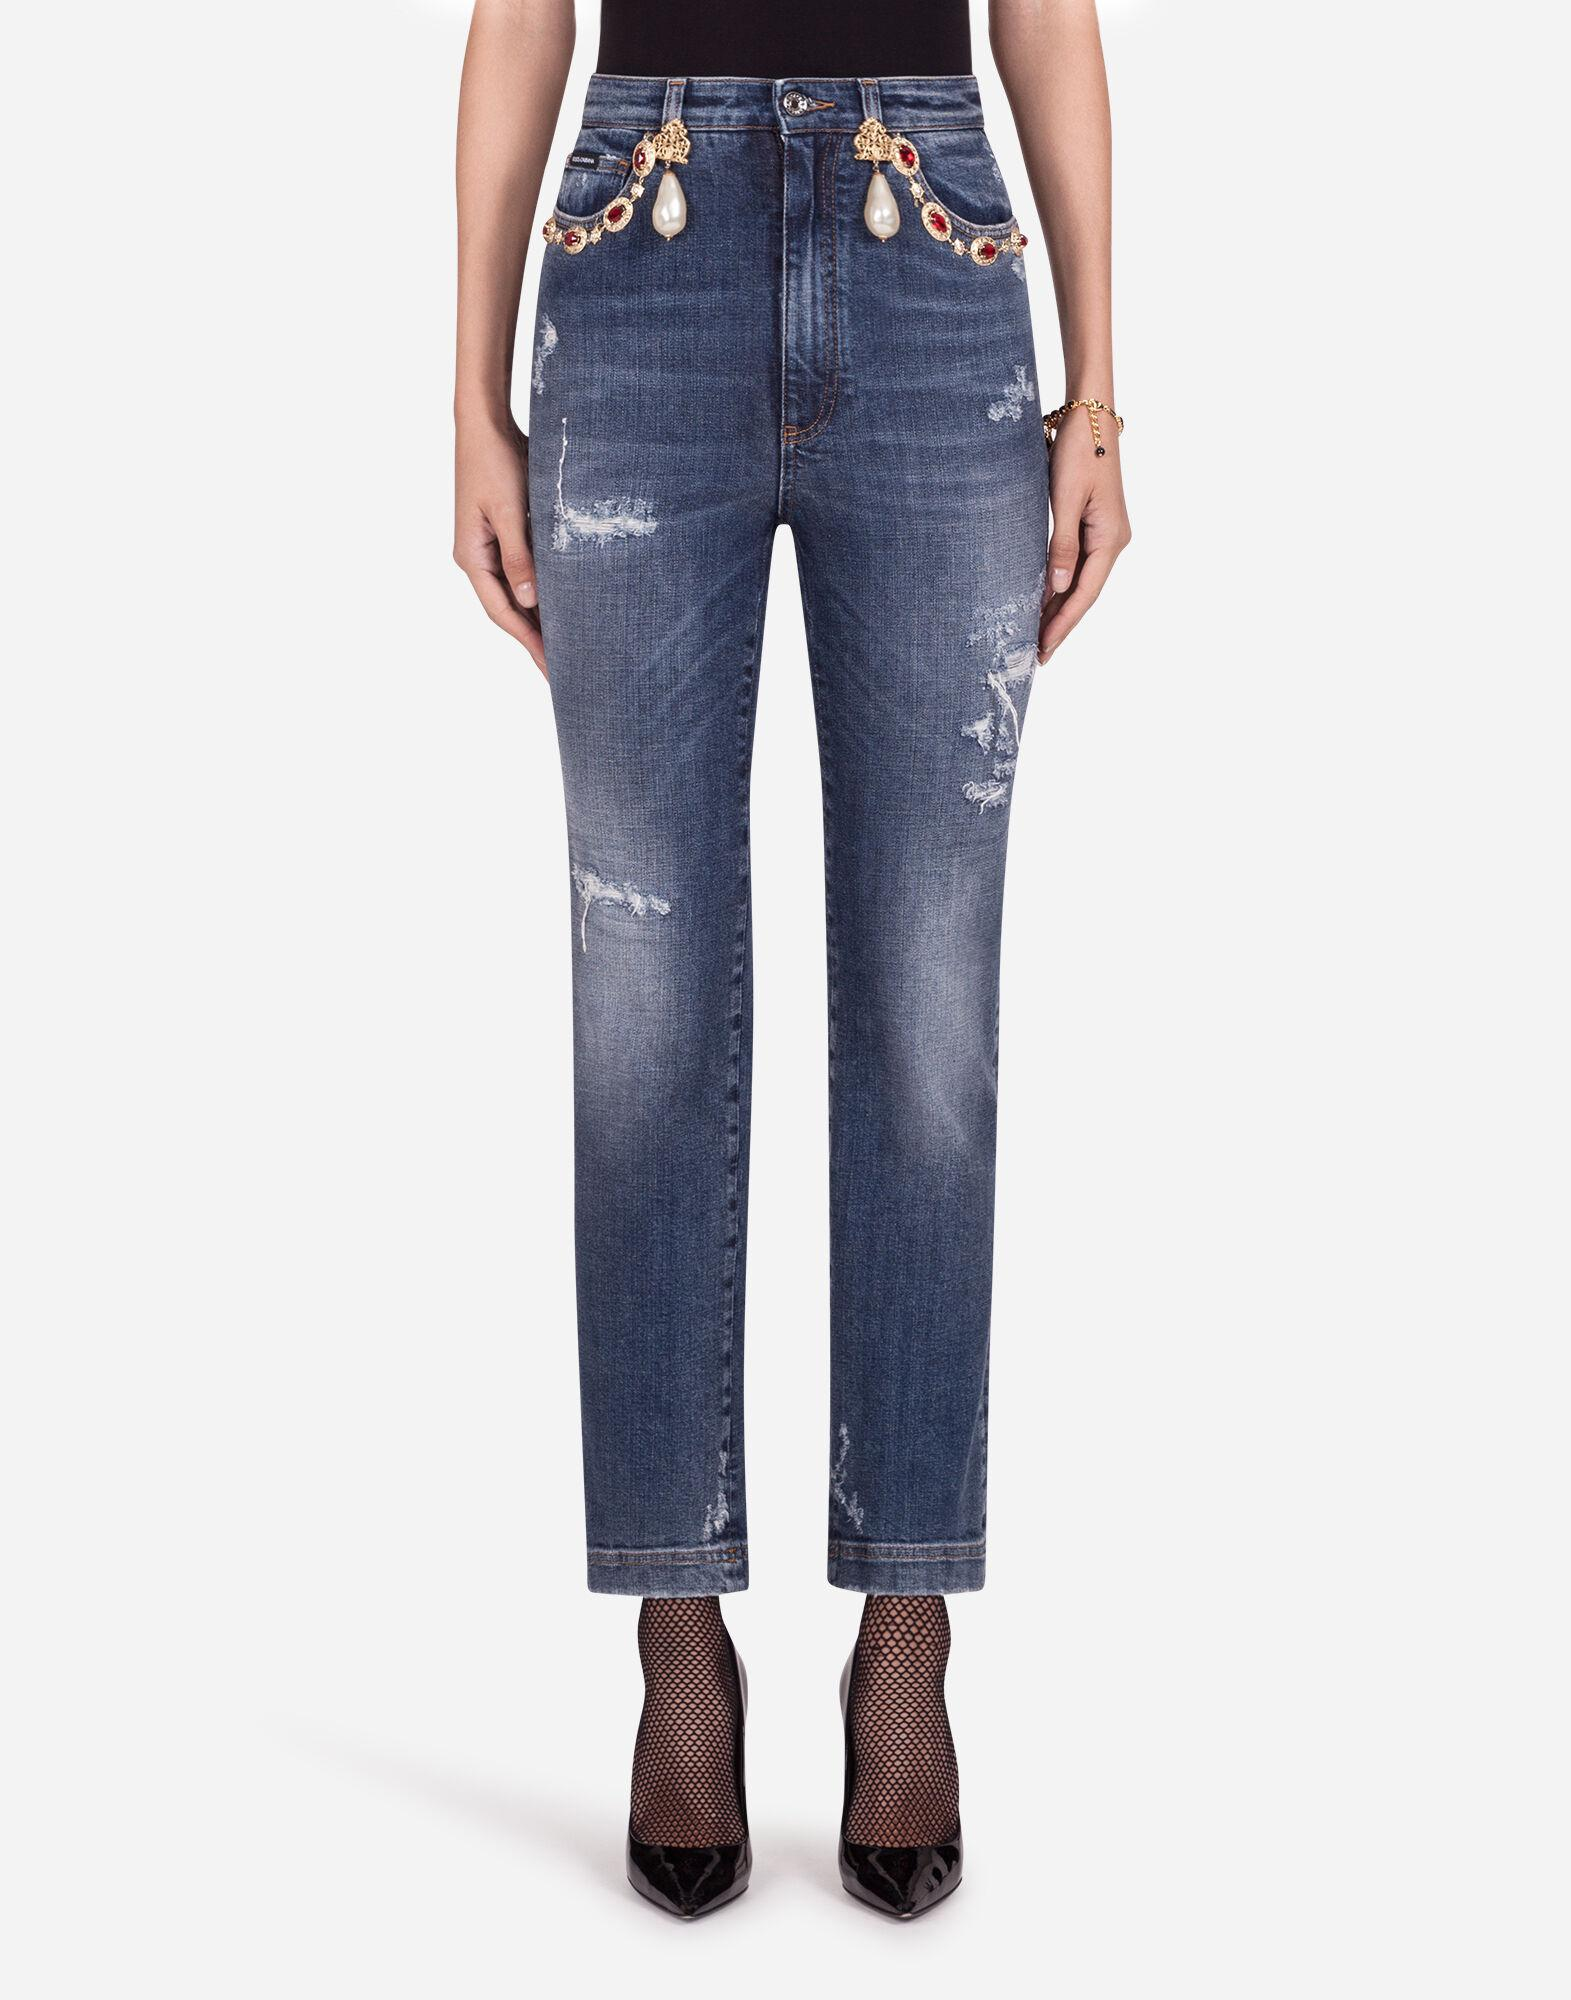 High-waisted jeans with pearls and embellishments